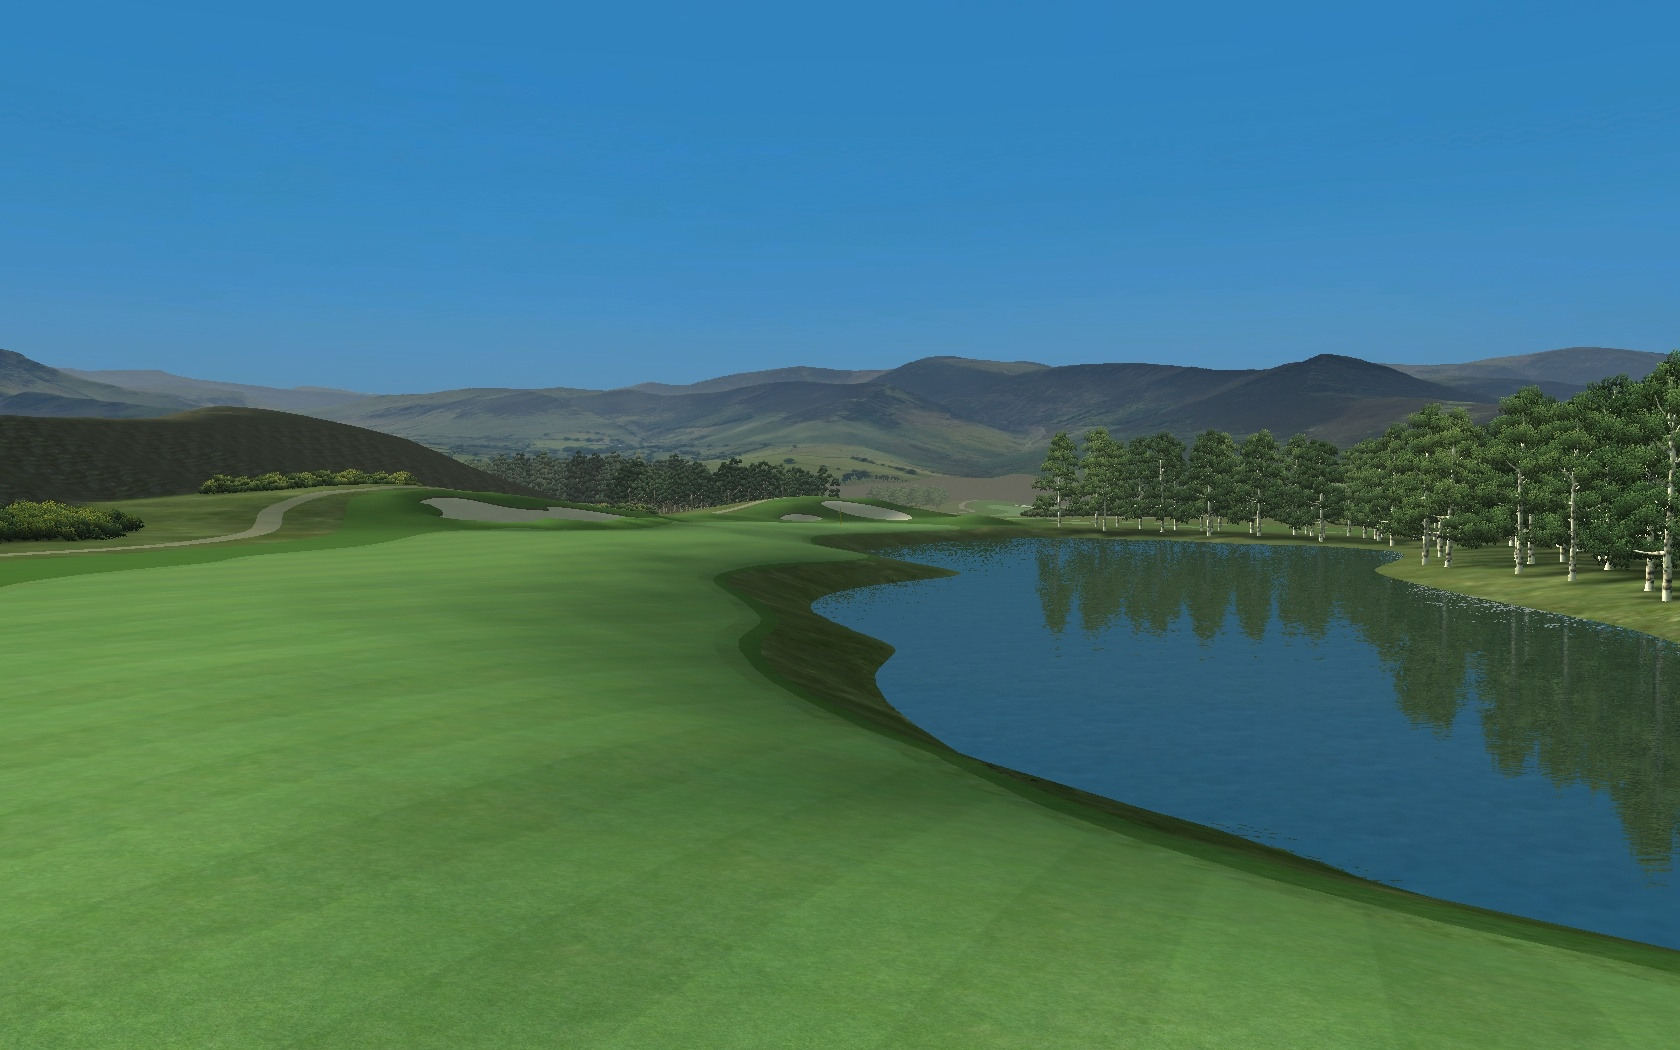 Picture of Vista Golf Club - click to view original size